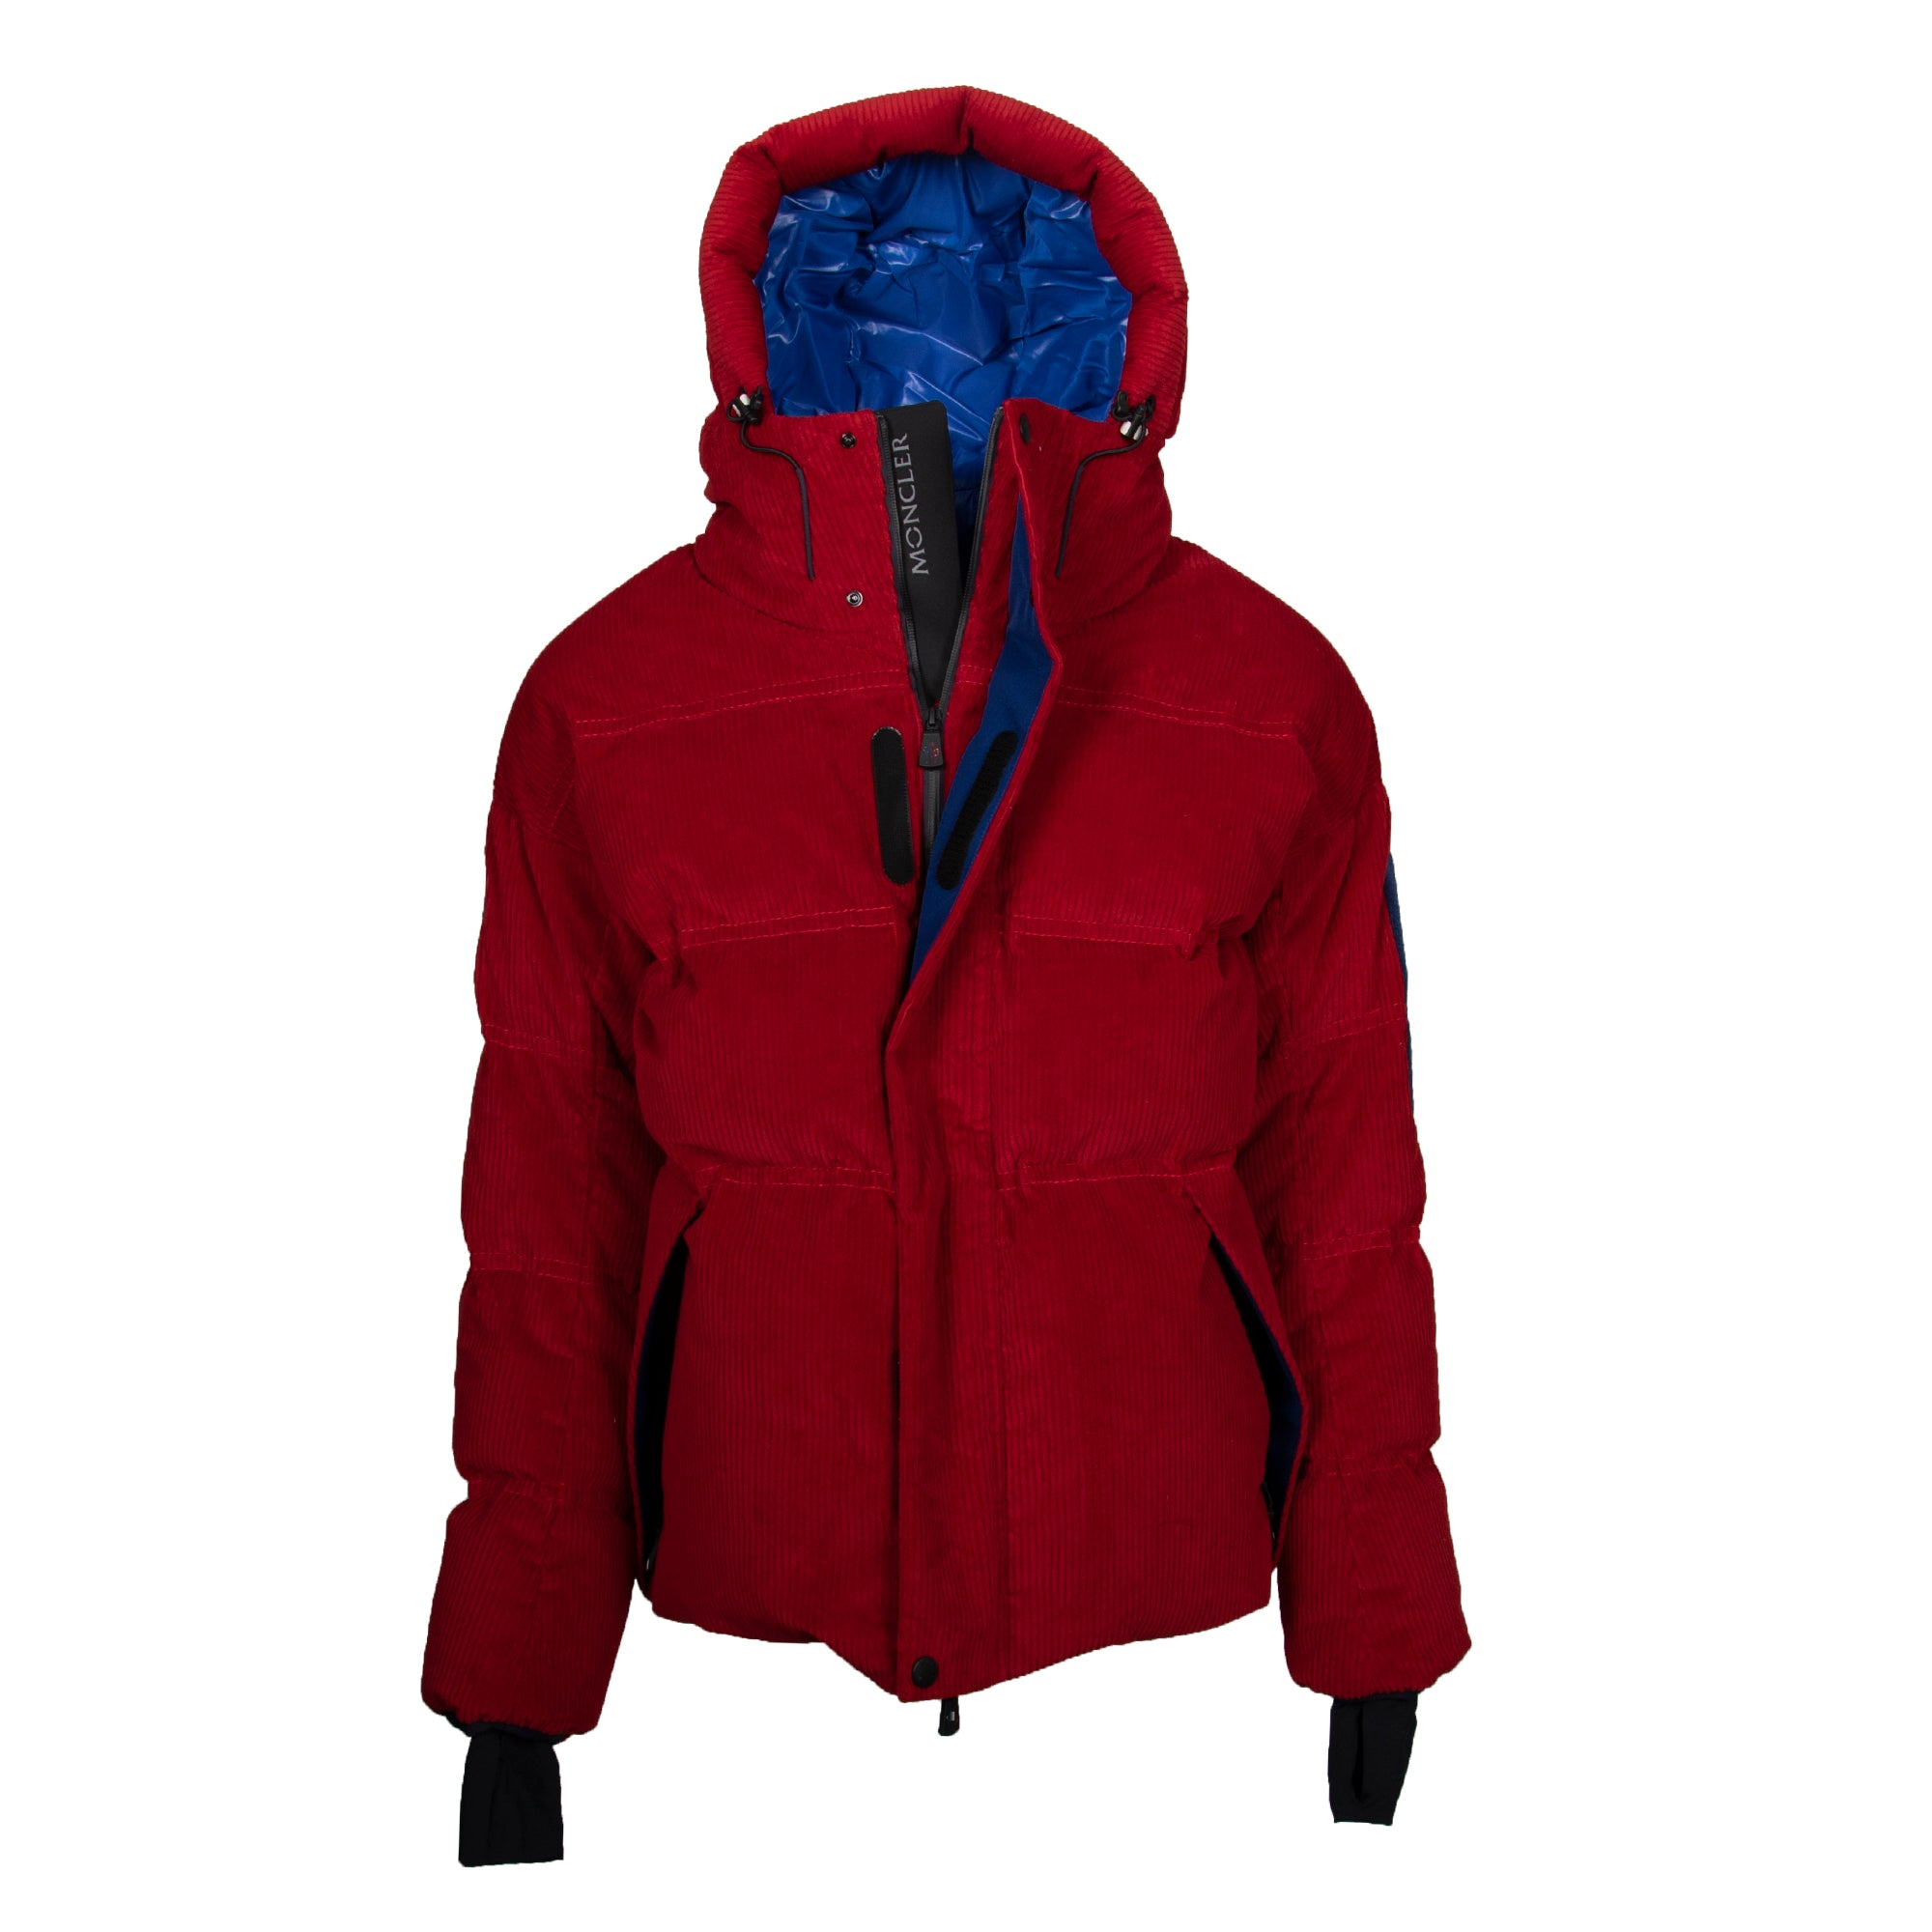 Moncler Stuller Hooded Corduroy Puffer Jacket Size 5 in Red